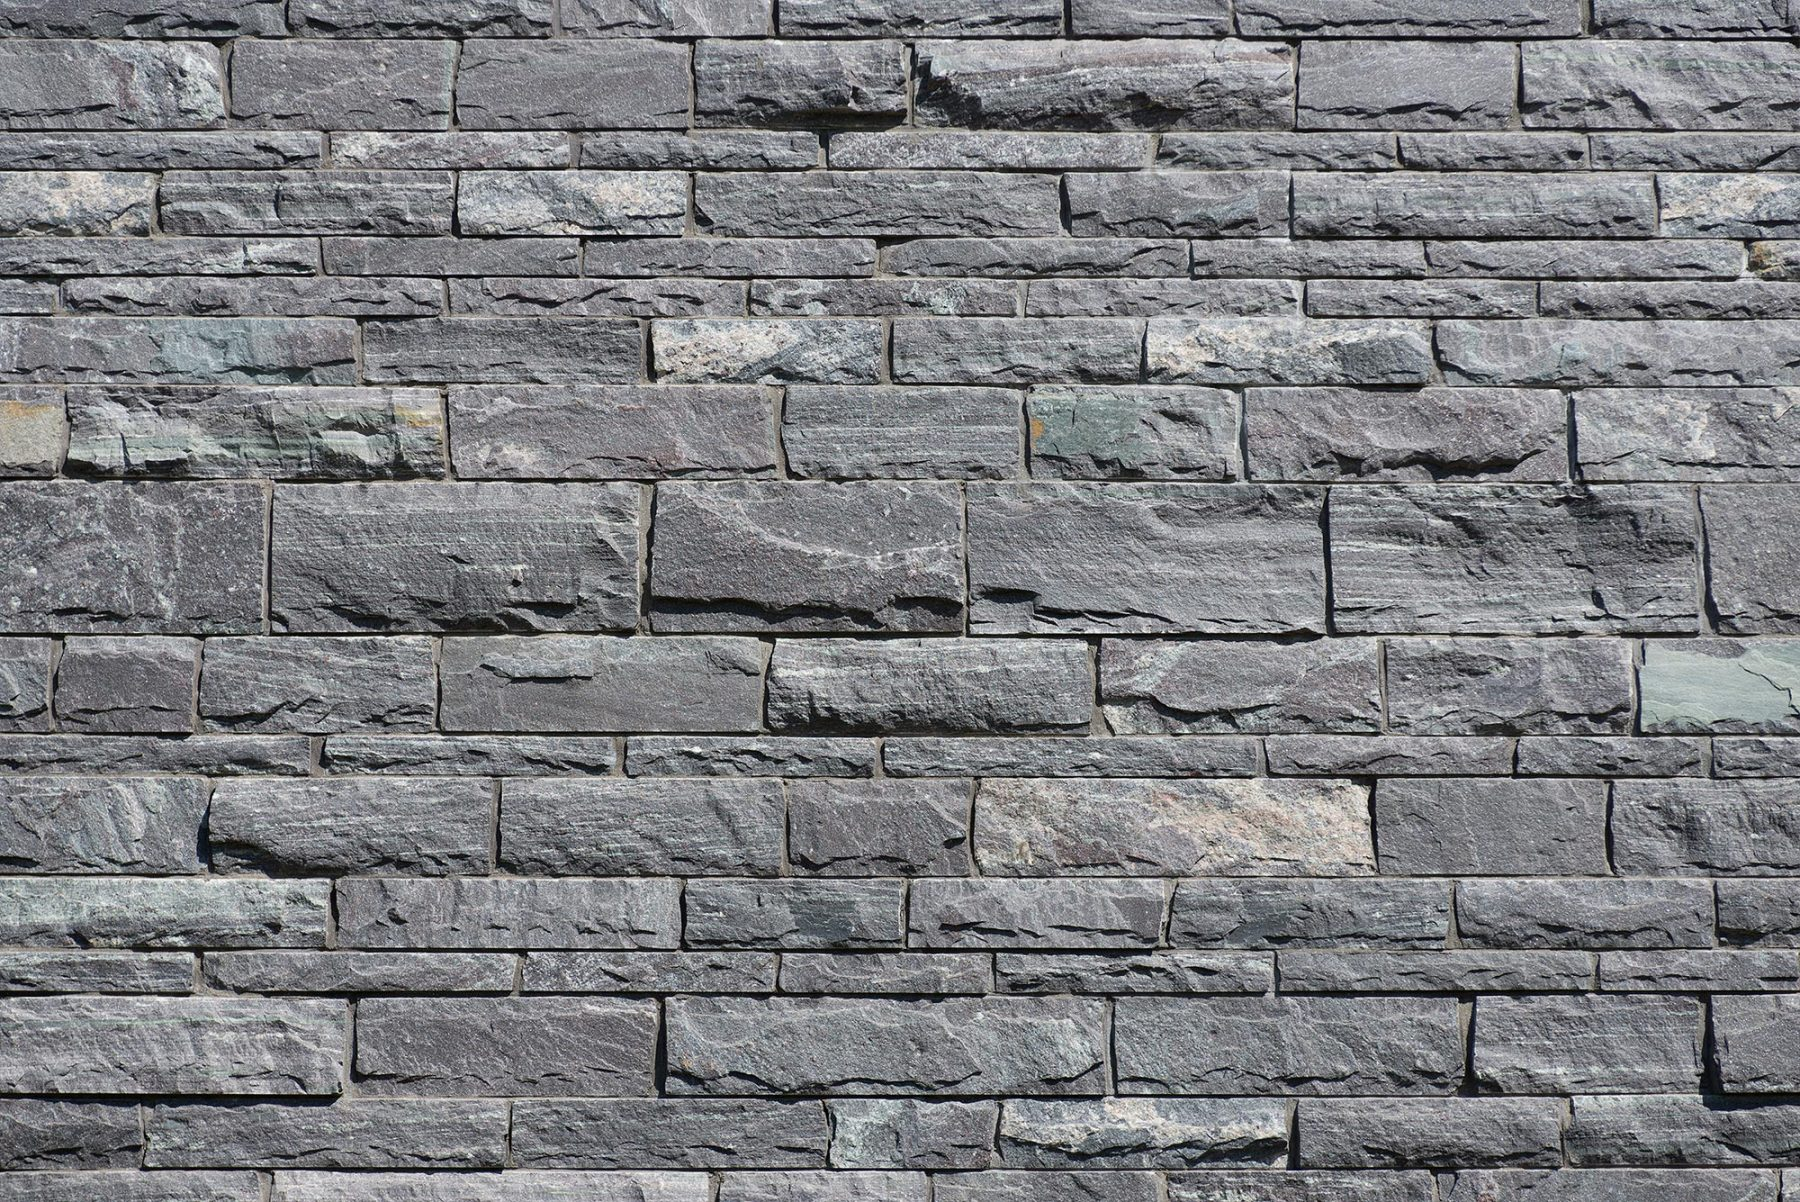 stone veneer at souther new hampshire university